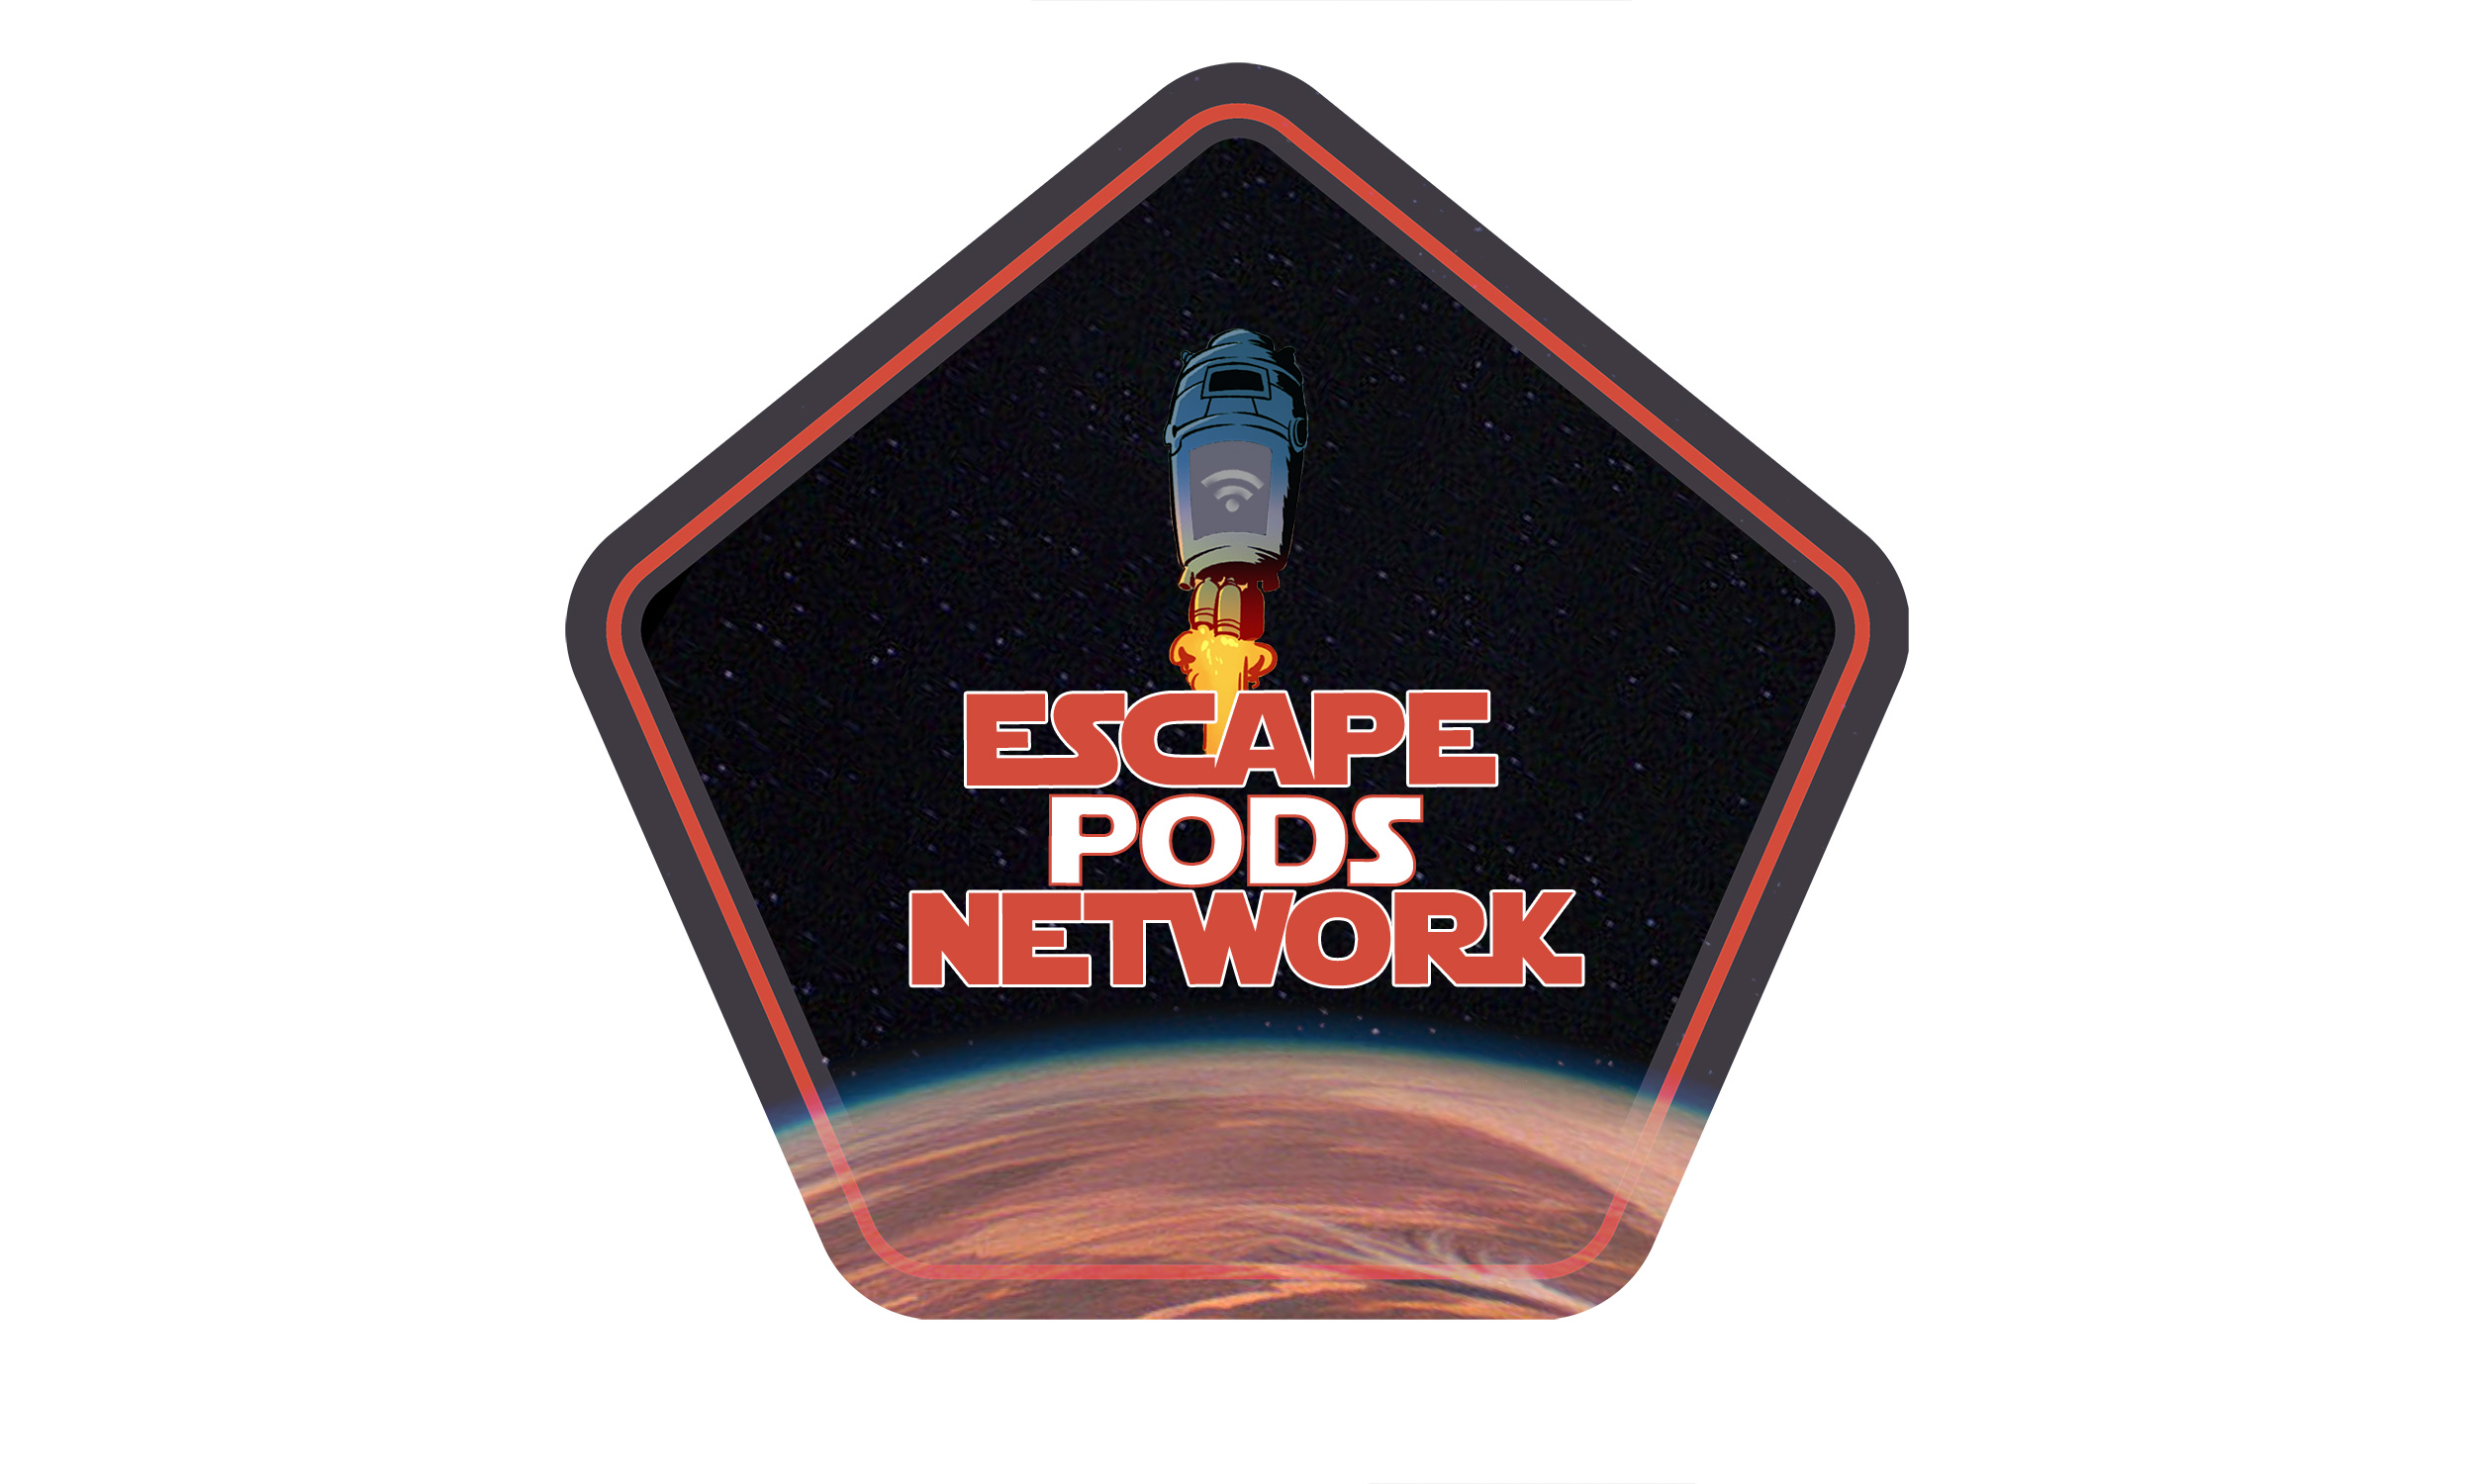 - Unmistakably Star Wars is dedicated to promoting positivity in fandom, and is a proud founding member of the Star Wars Escape Pods Network. Part of our vision is working toward the intersection of quality productions and inclusive, positive fandom. Please be sure to visit WeAreEscapePods.com for our sister shows!